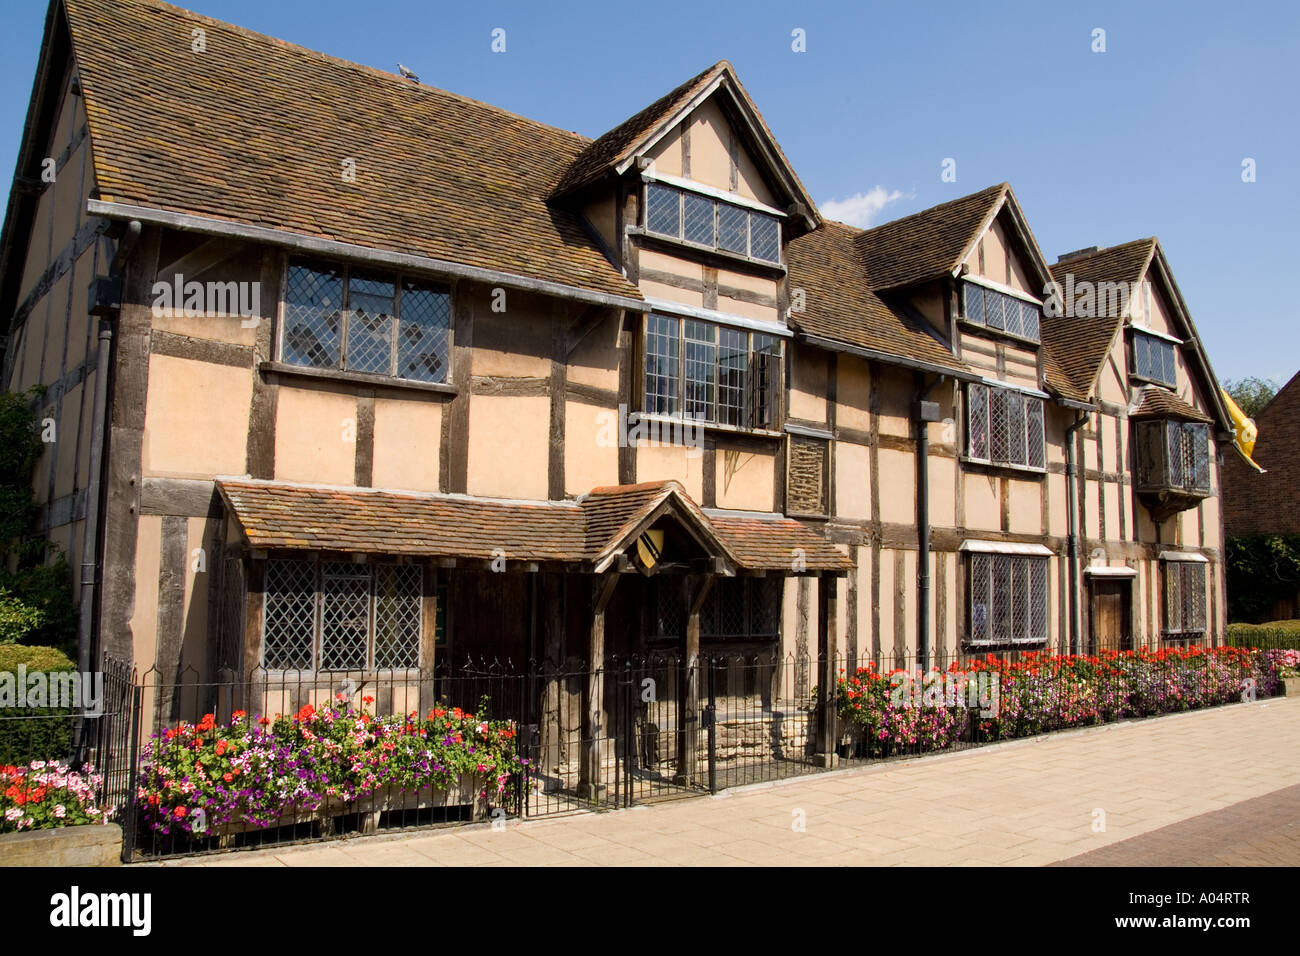 House Of Famous Writer William Shakespeare In Stratford Upon Avon The West Midlands Great Britian England